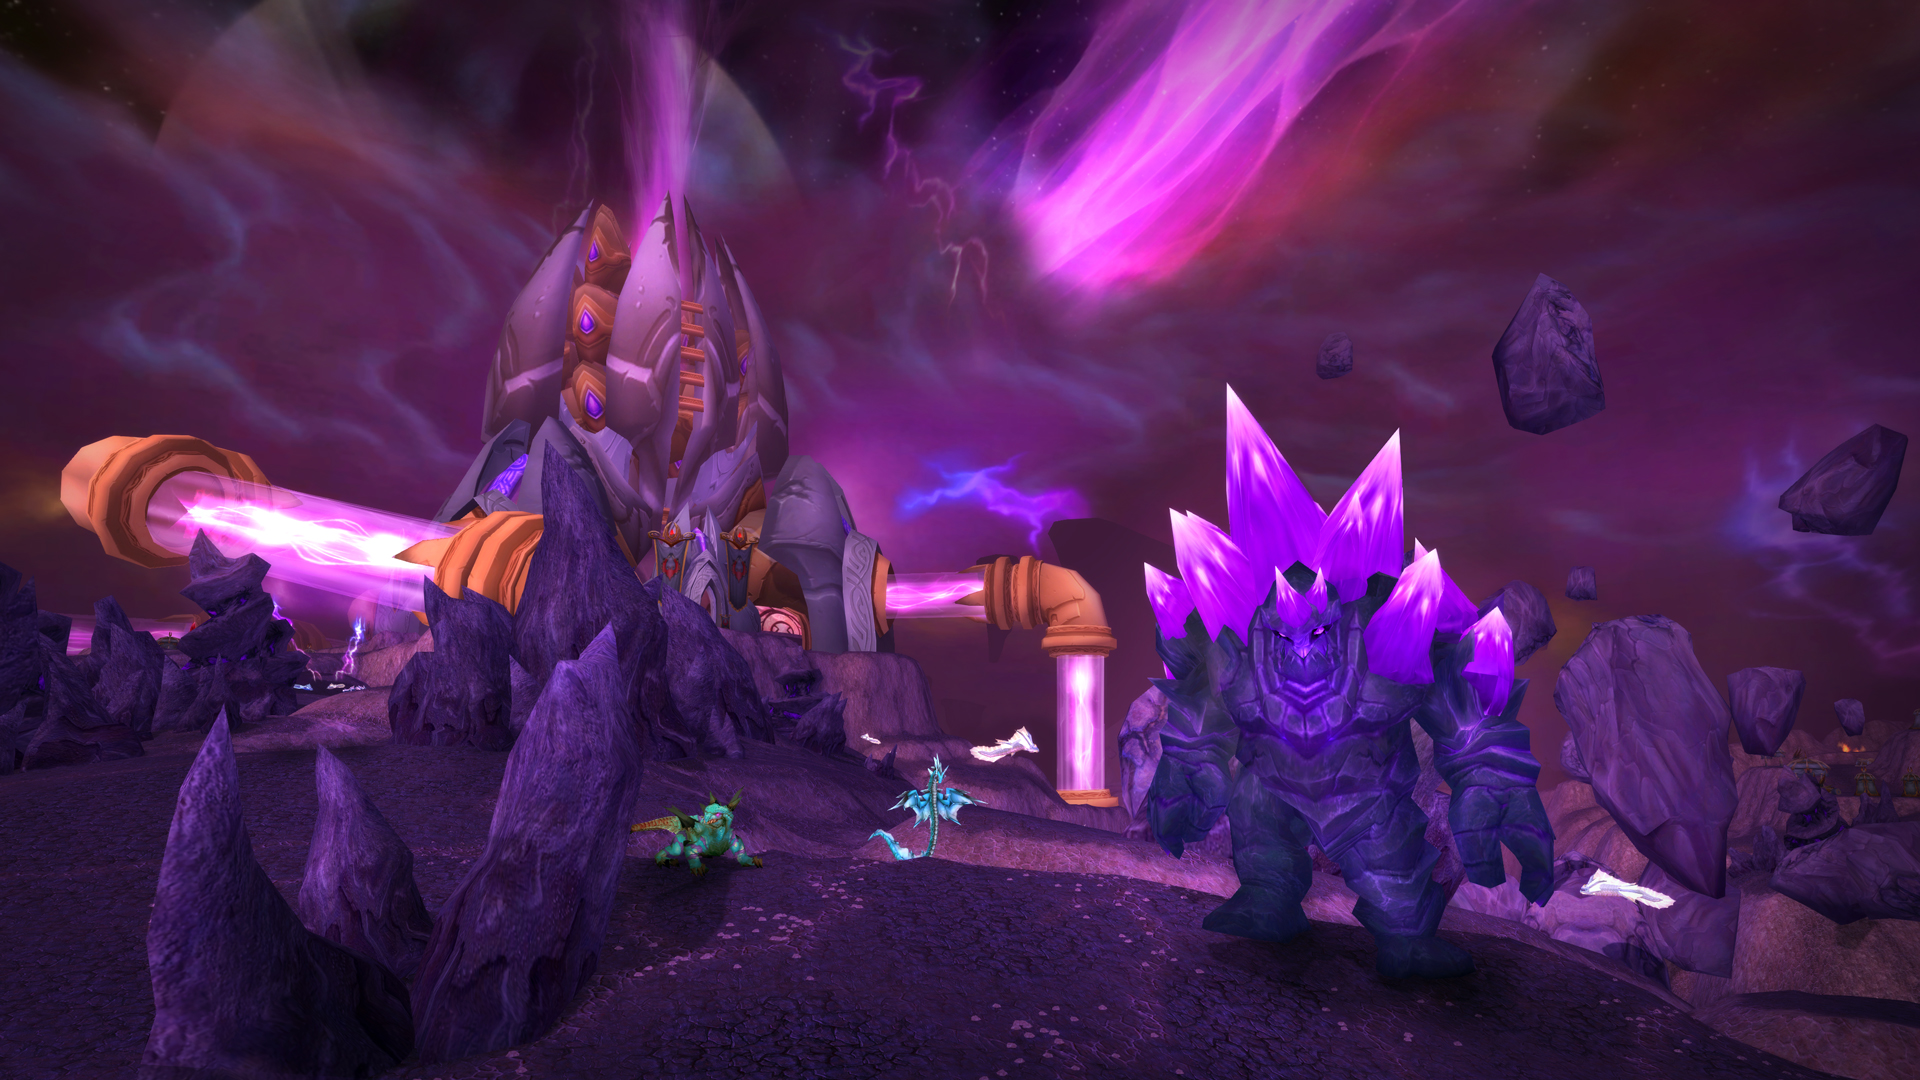 World of Warcraft: Burning Crusade Classic - a giant mana golem patrols the shattered realm of Netherstorm